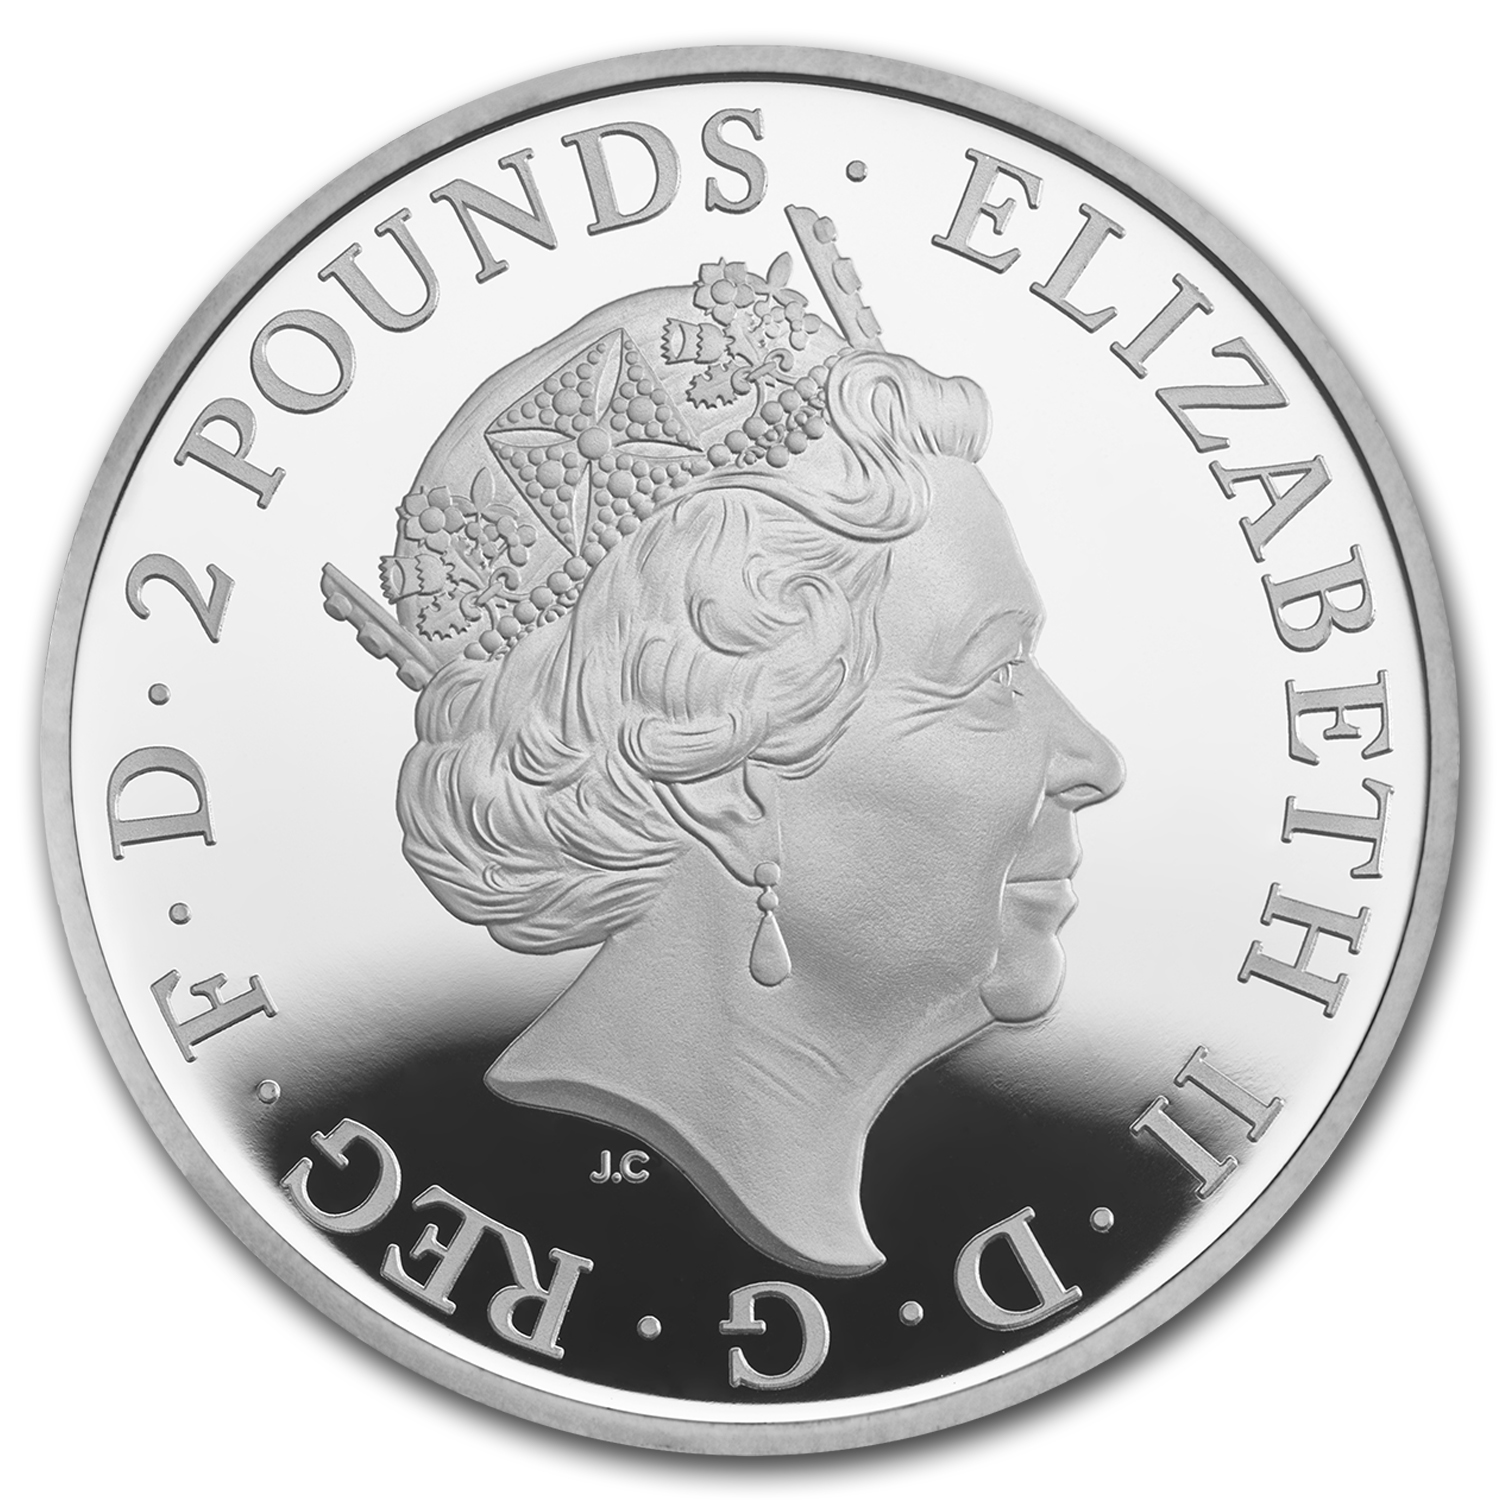 2016 Great Britain 1 oz Proof Silver Britannia